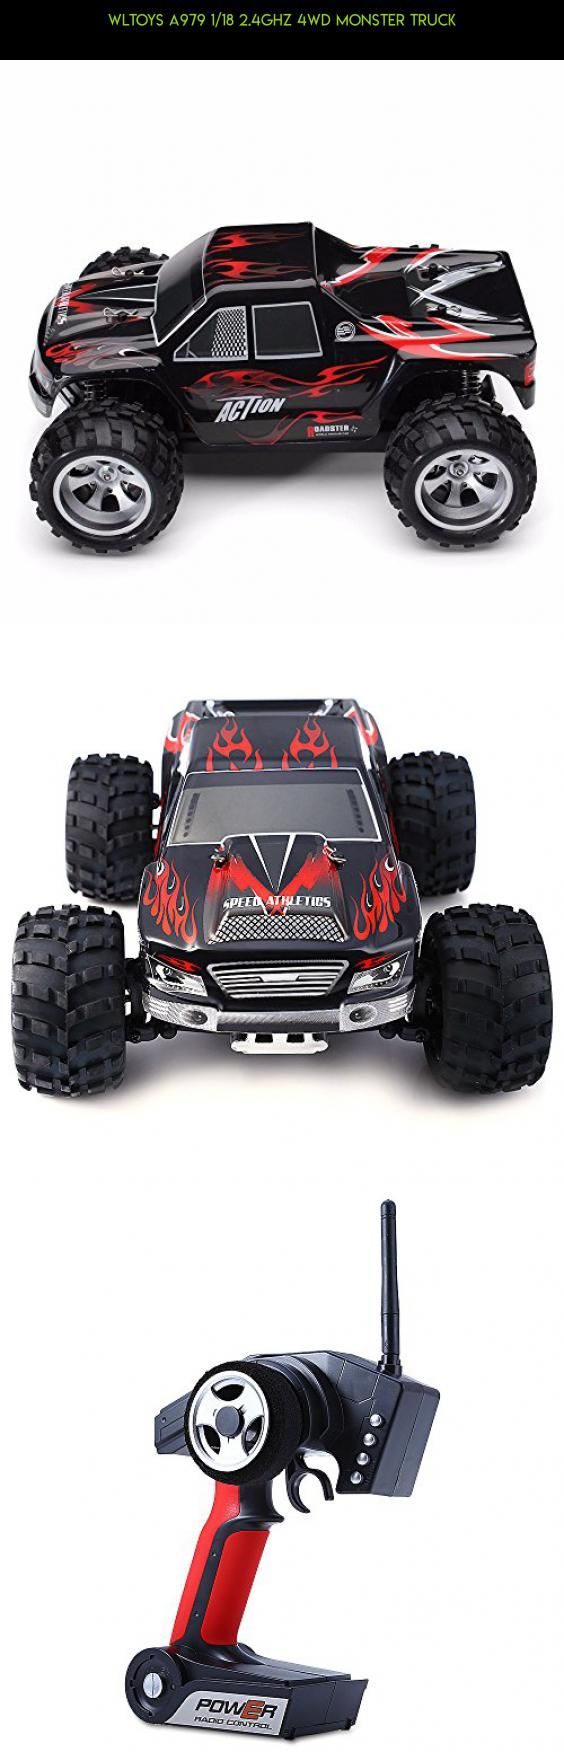 Wltoys A979 1/18 2.4GHz 4WD Monster Truck #plans #parts #truck #shopping #gadgets #camera #products #drone #tech #racing #kit #wltoys #technology #monster #fpv